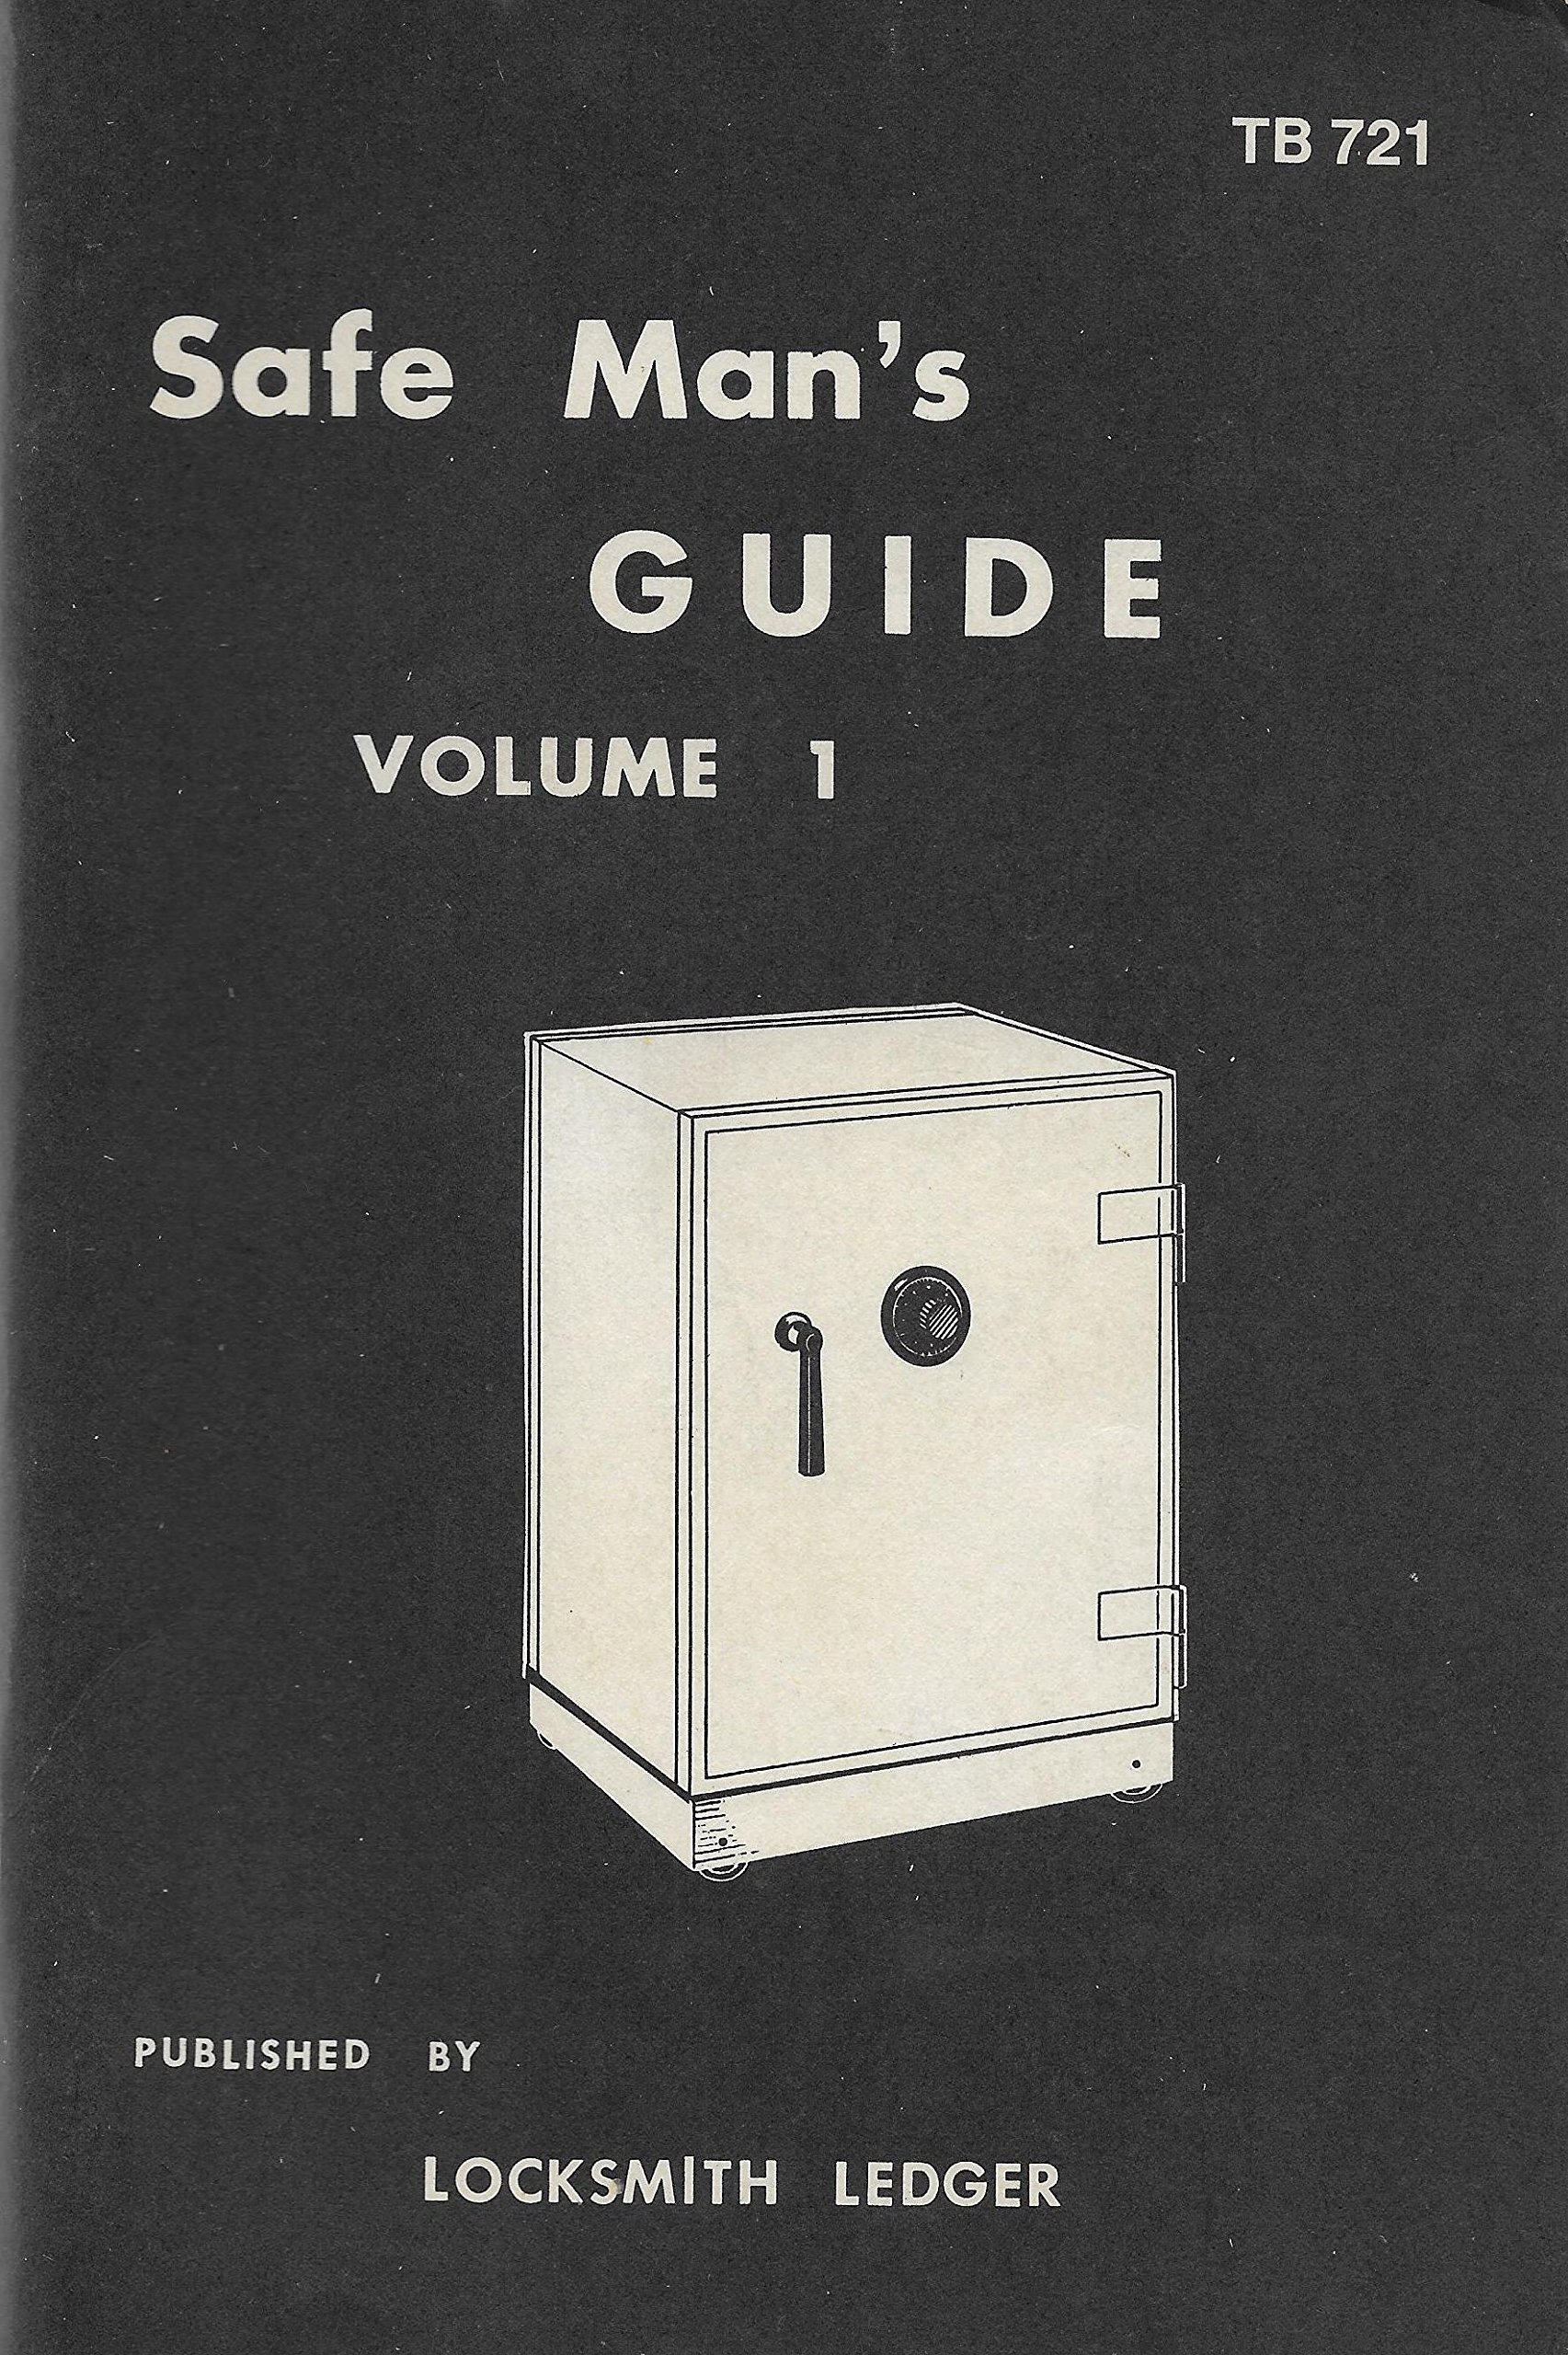 Safe Man's Guide (Volume 1): The Locksmith Ledger: Amazon com: Books